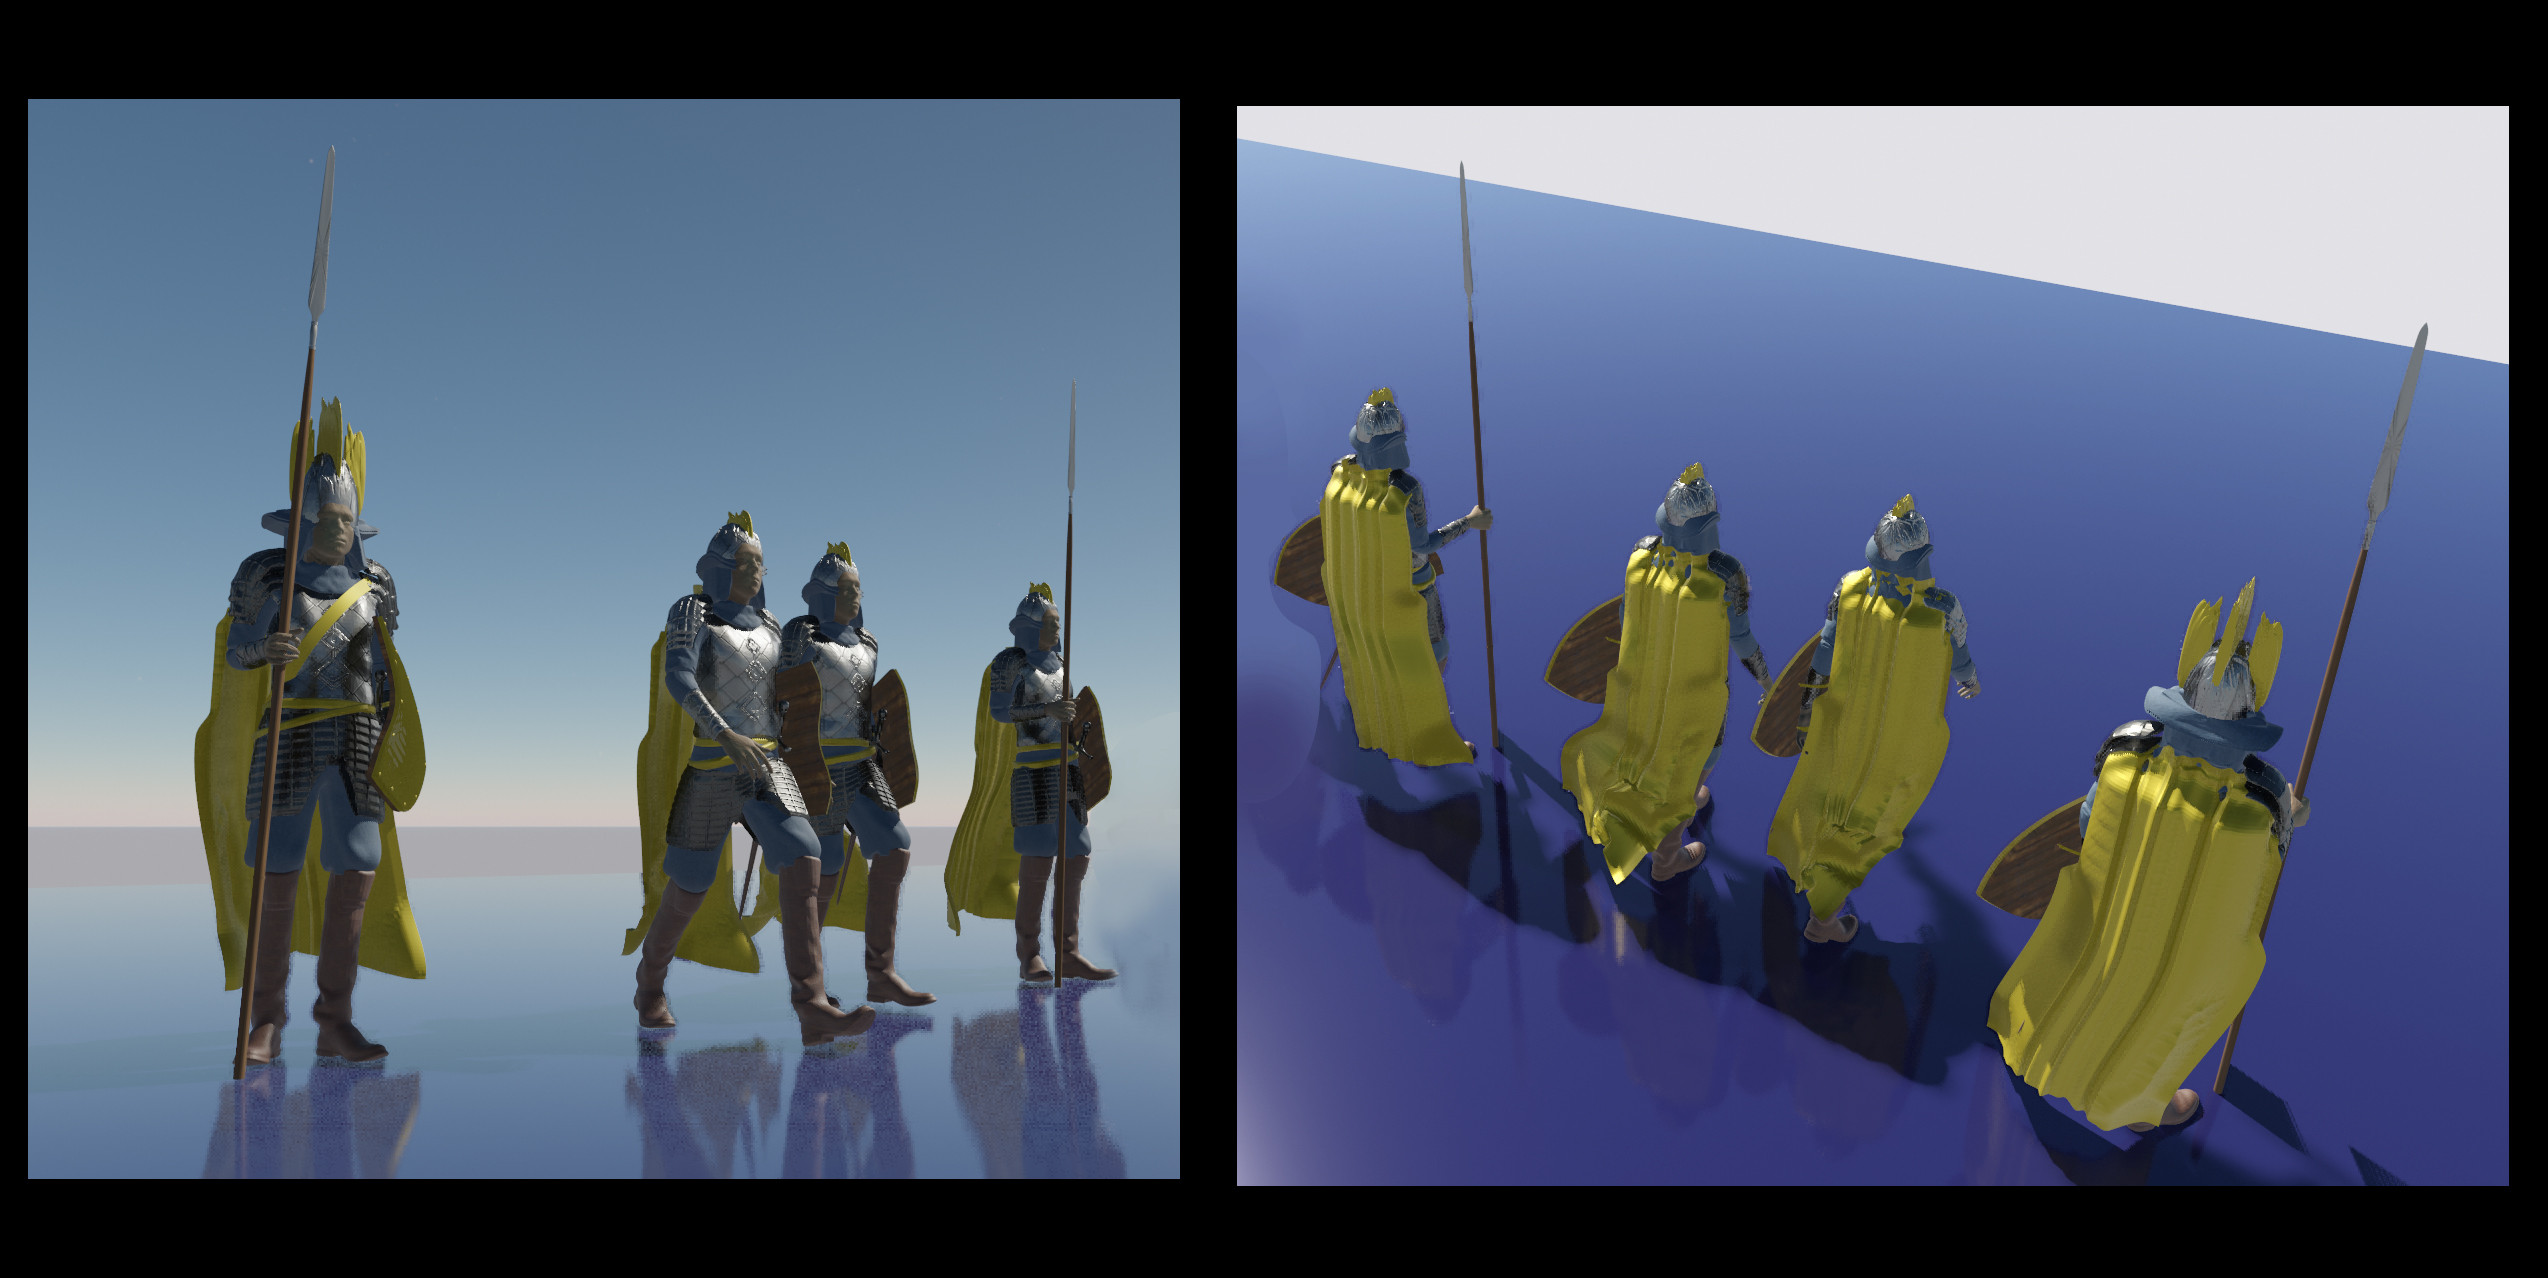 Some Soldier Characters I modeled for this set.